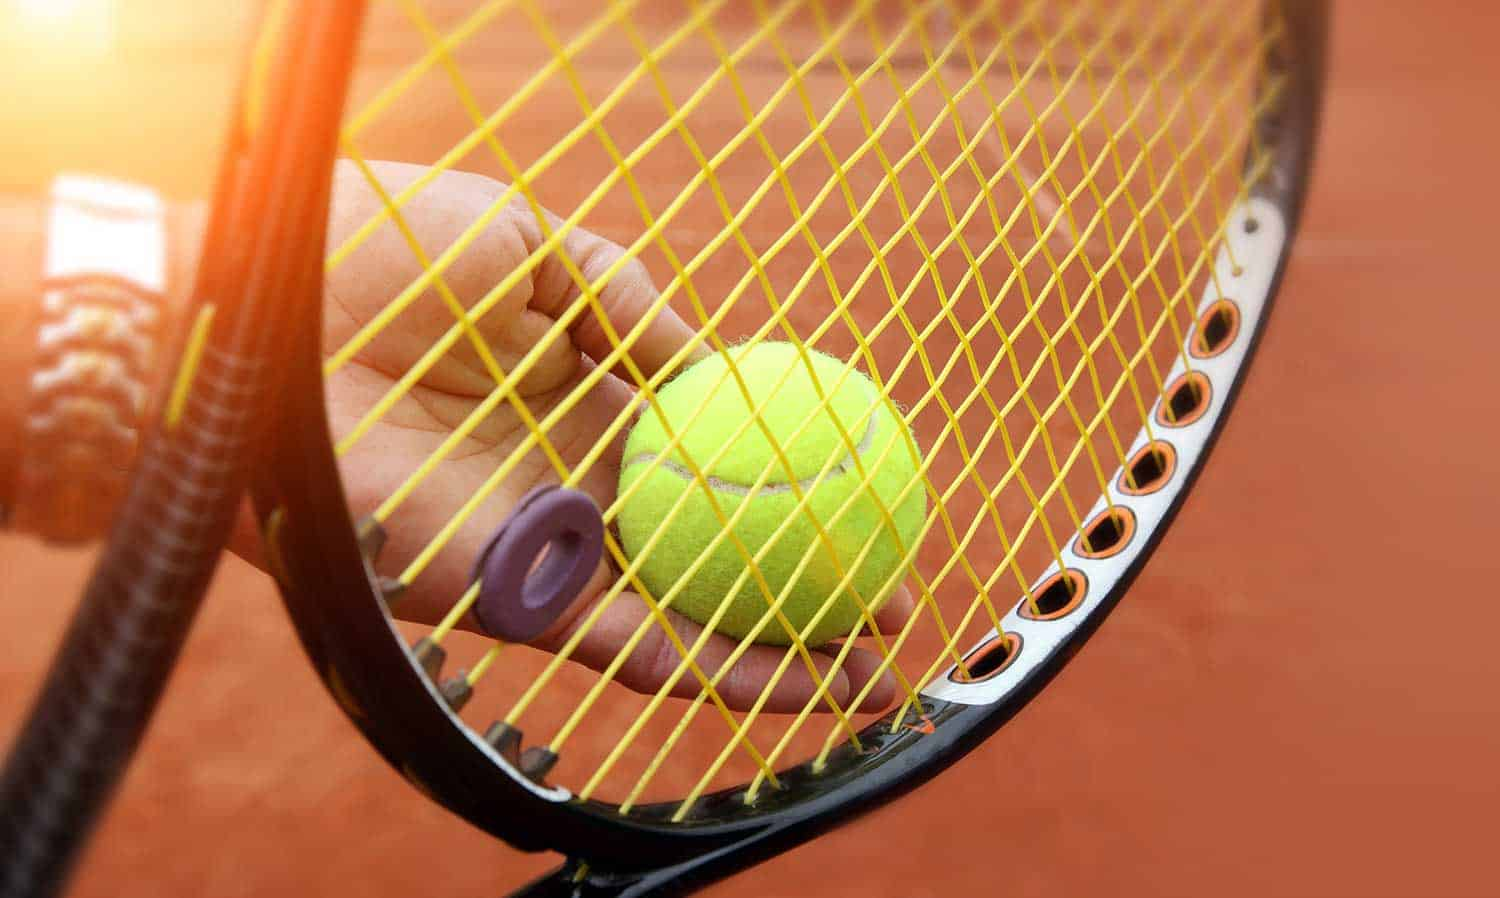 Person holding tennis racket and tennis ball getting ready to serve